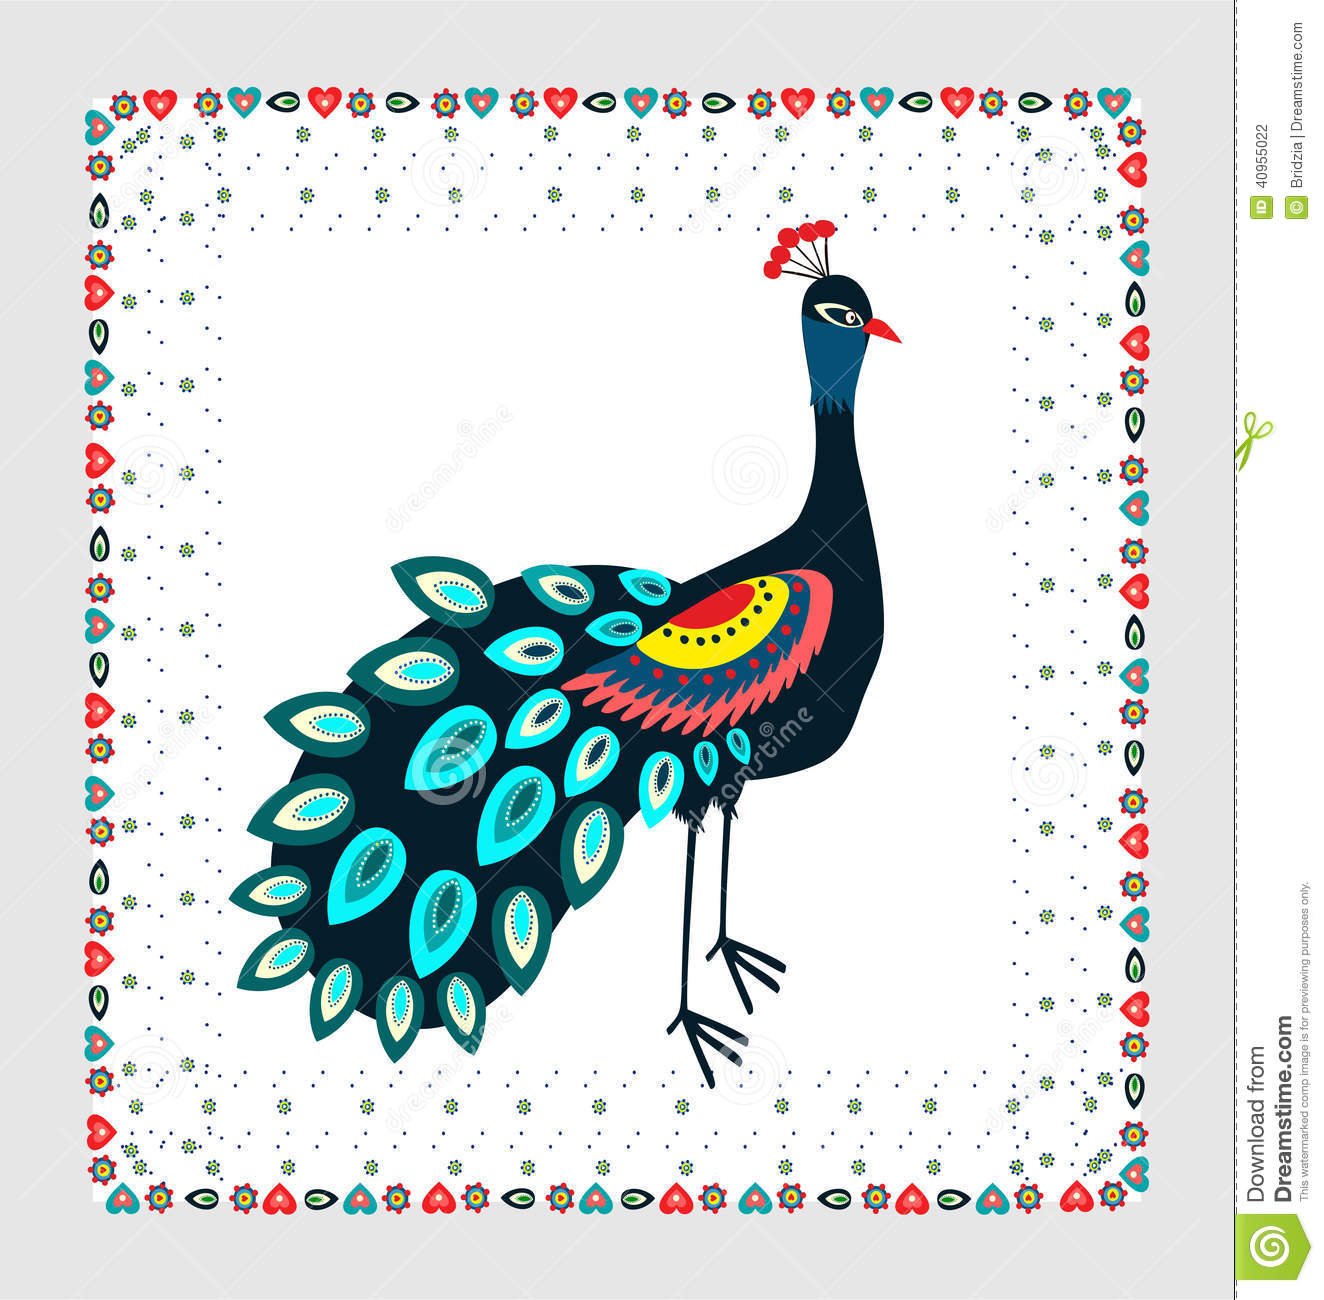 Peacock embroidery stock vector. Illustration of inspiration - 40955022